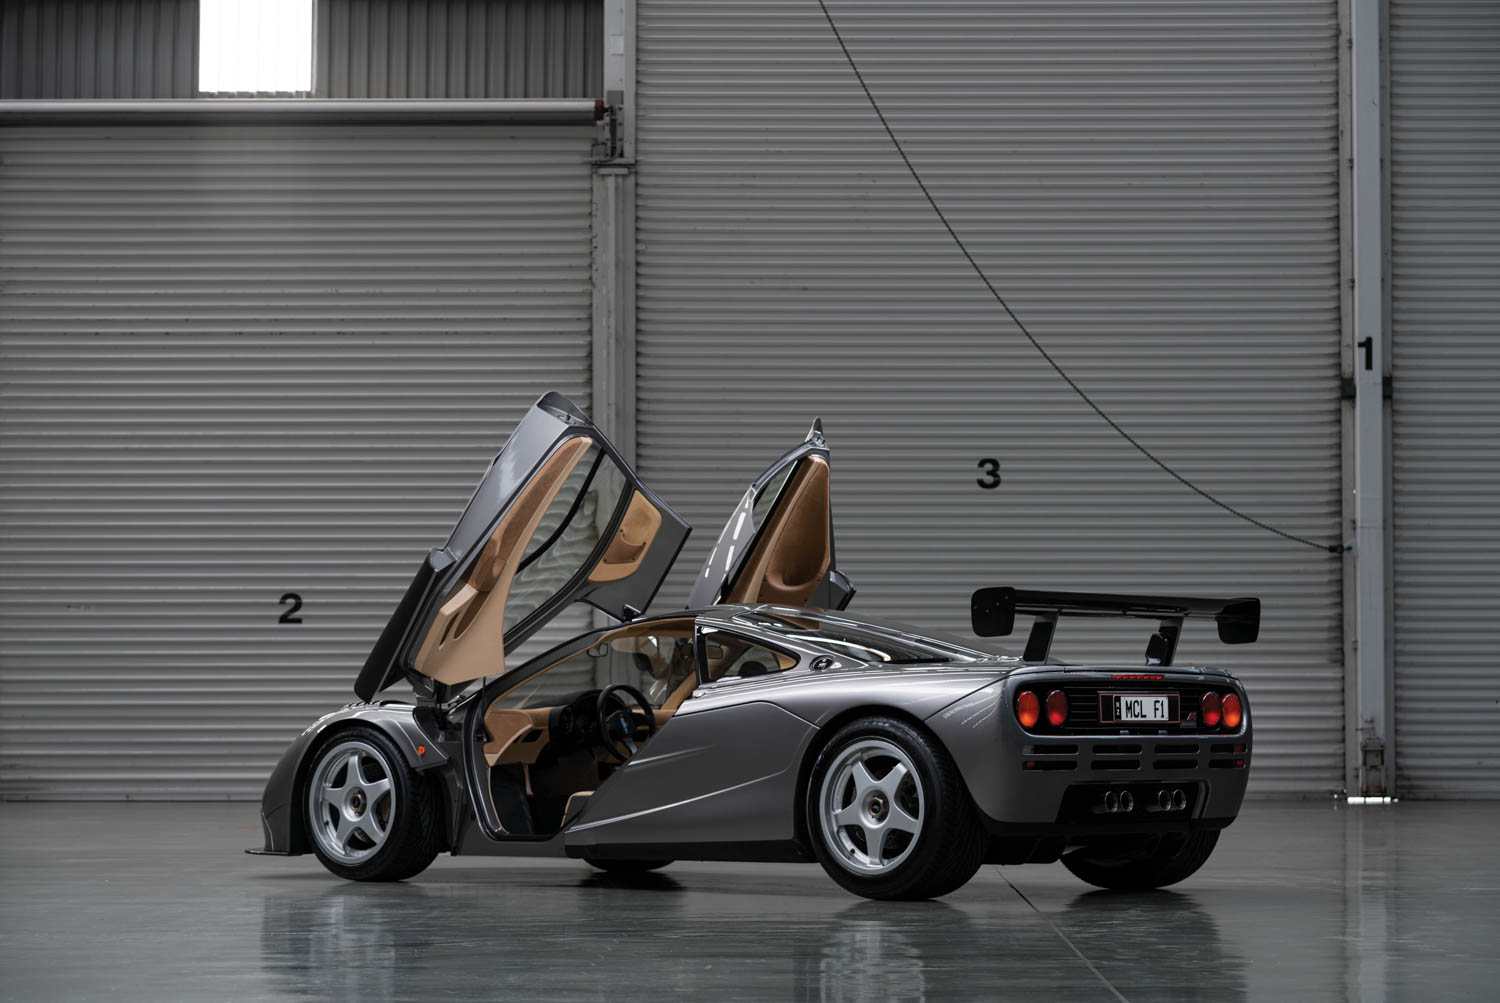 1994 McLaren F1 'LM-Specification' rear 3/4 doors up